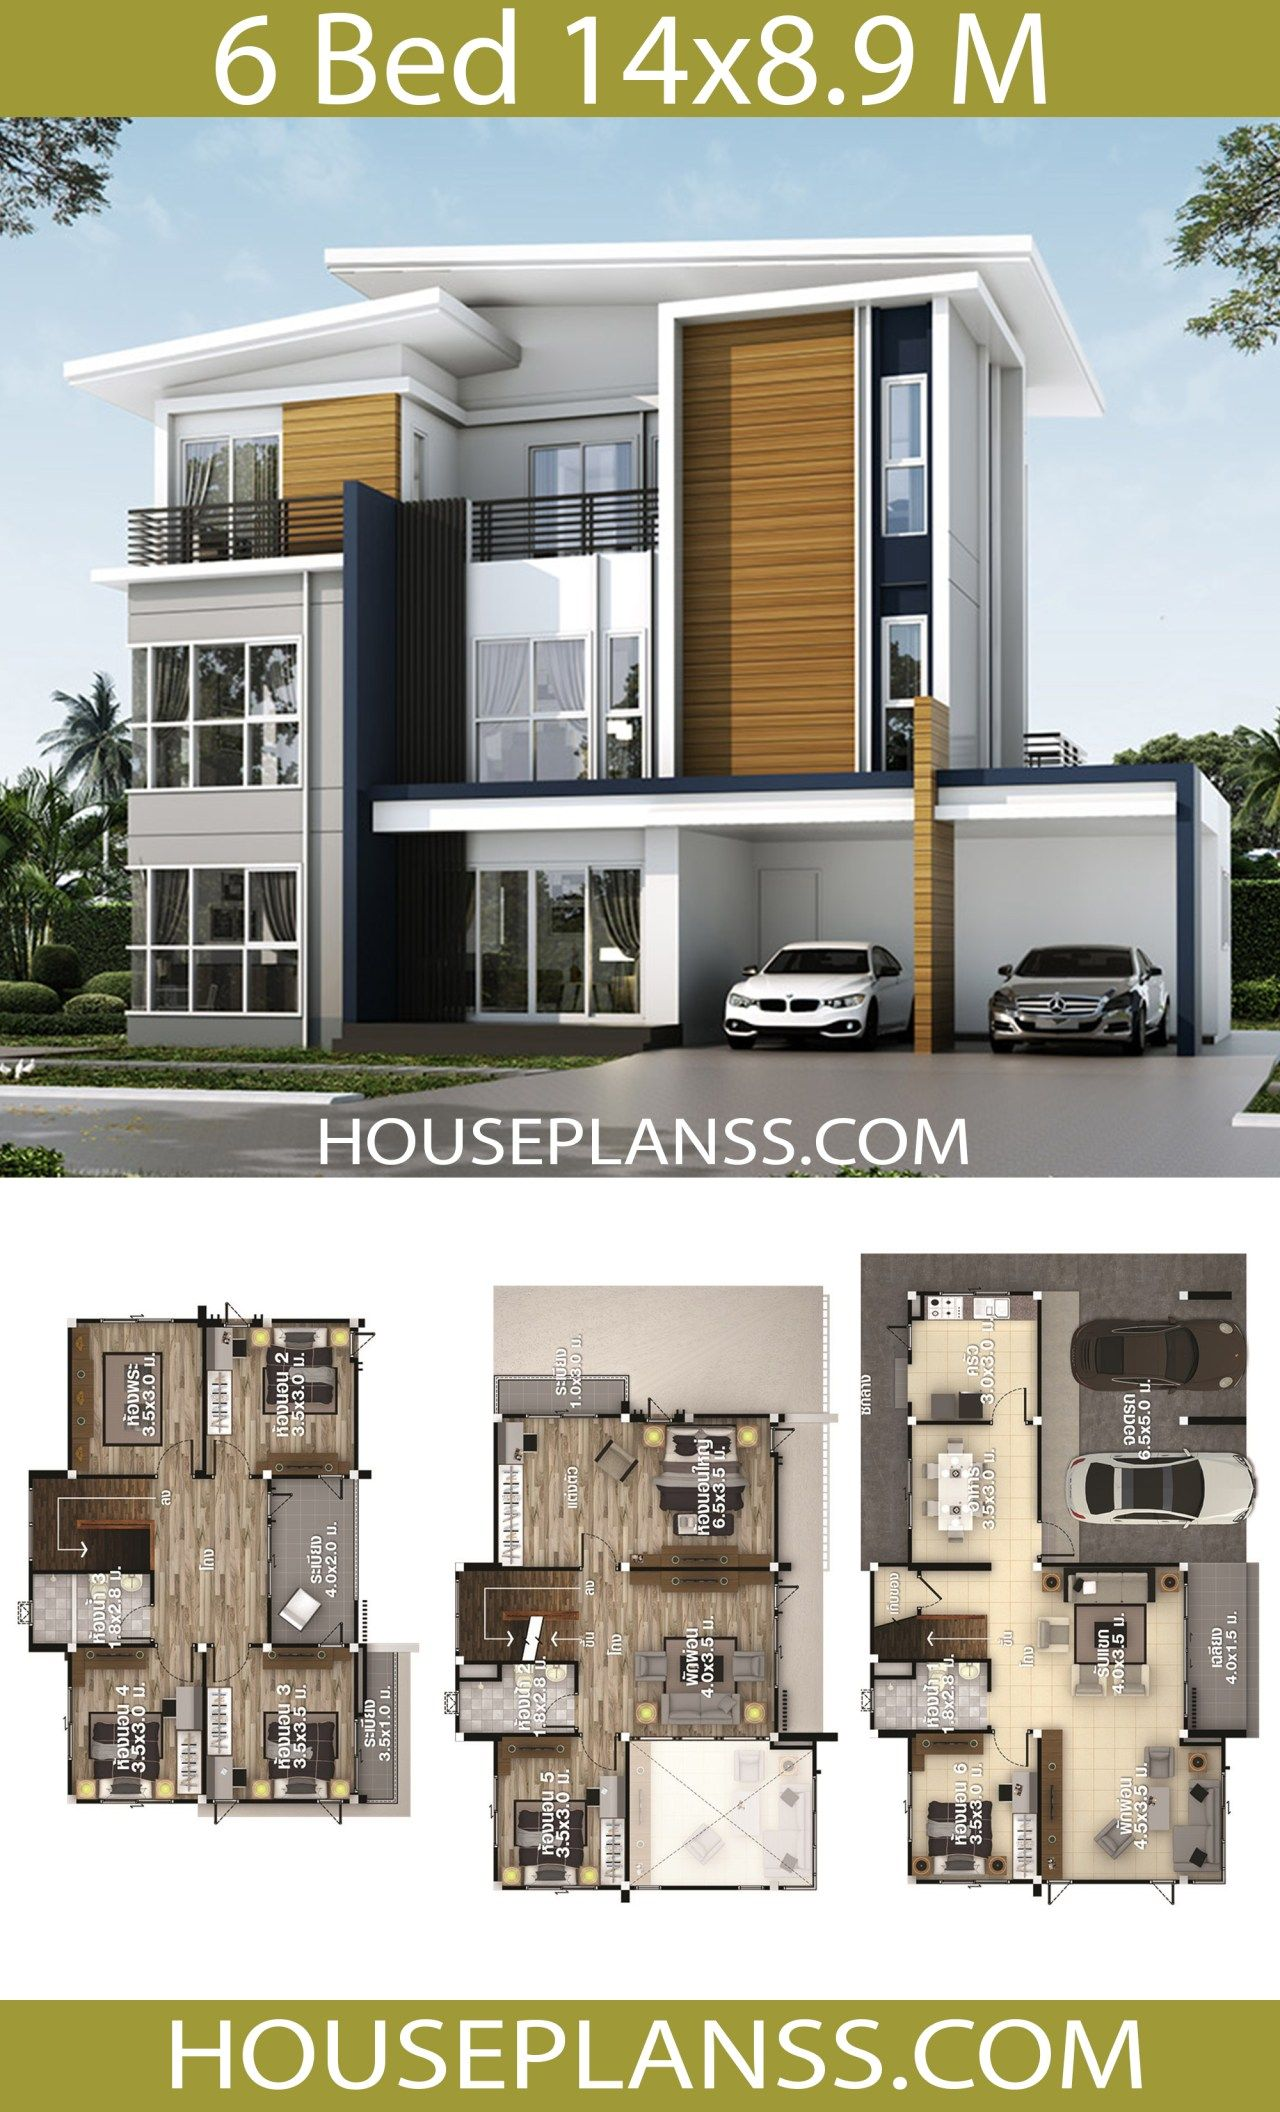 House Design Plans 14x8 9 With 6 Bedrooms Home Ideas House Construction Plan Model House Plan Architectural House Plans